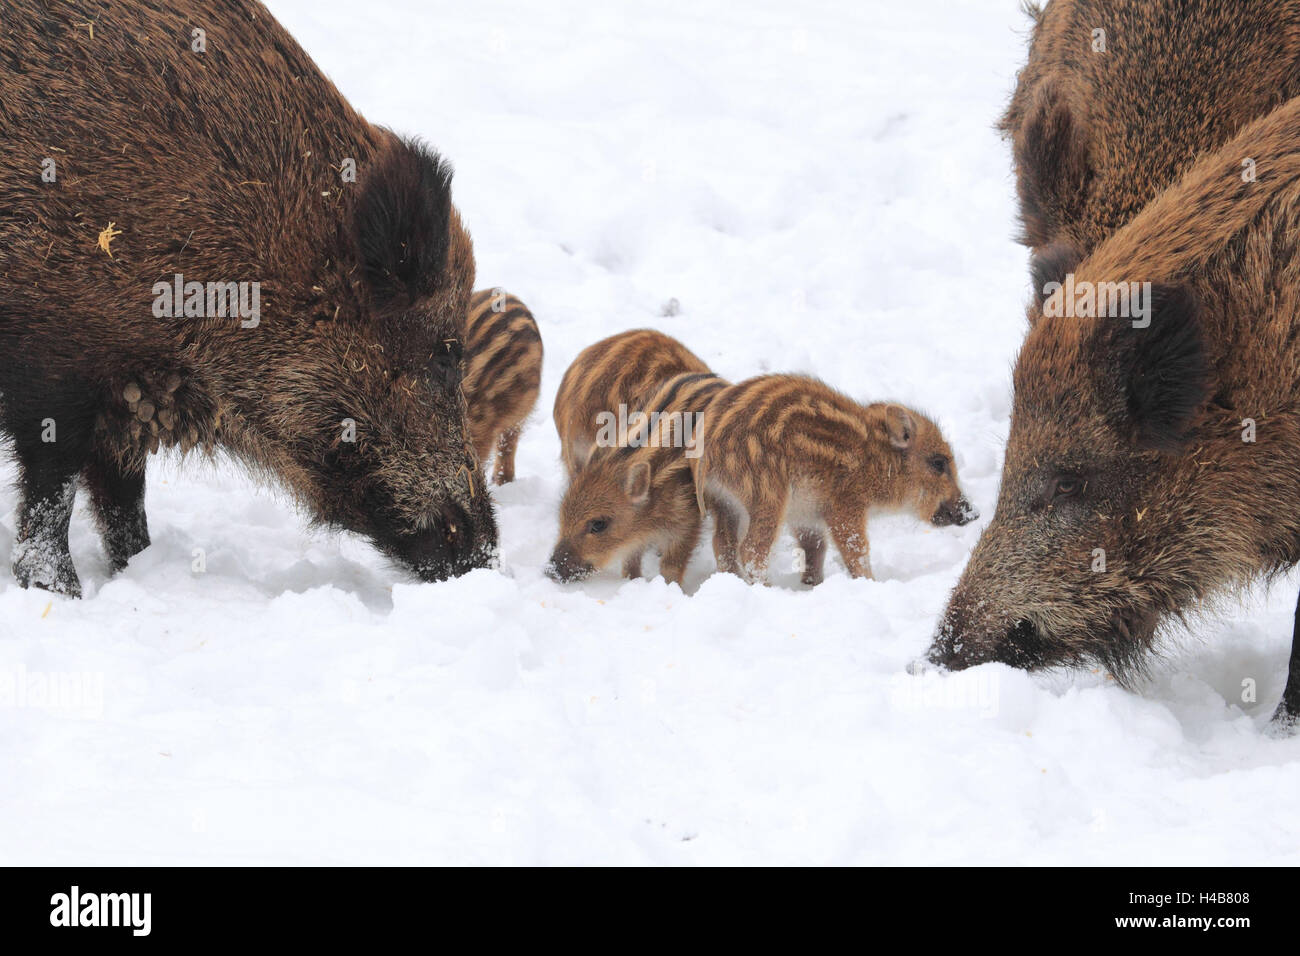 Wild boars with young animals in the snow, - Stock Image